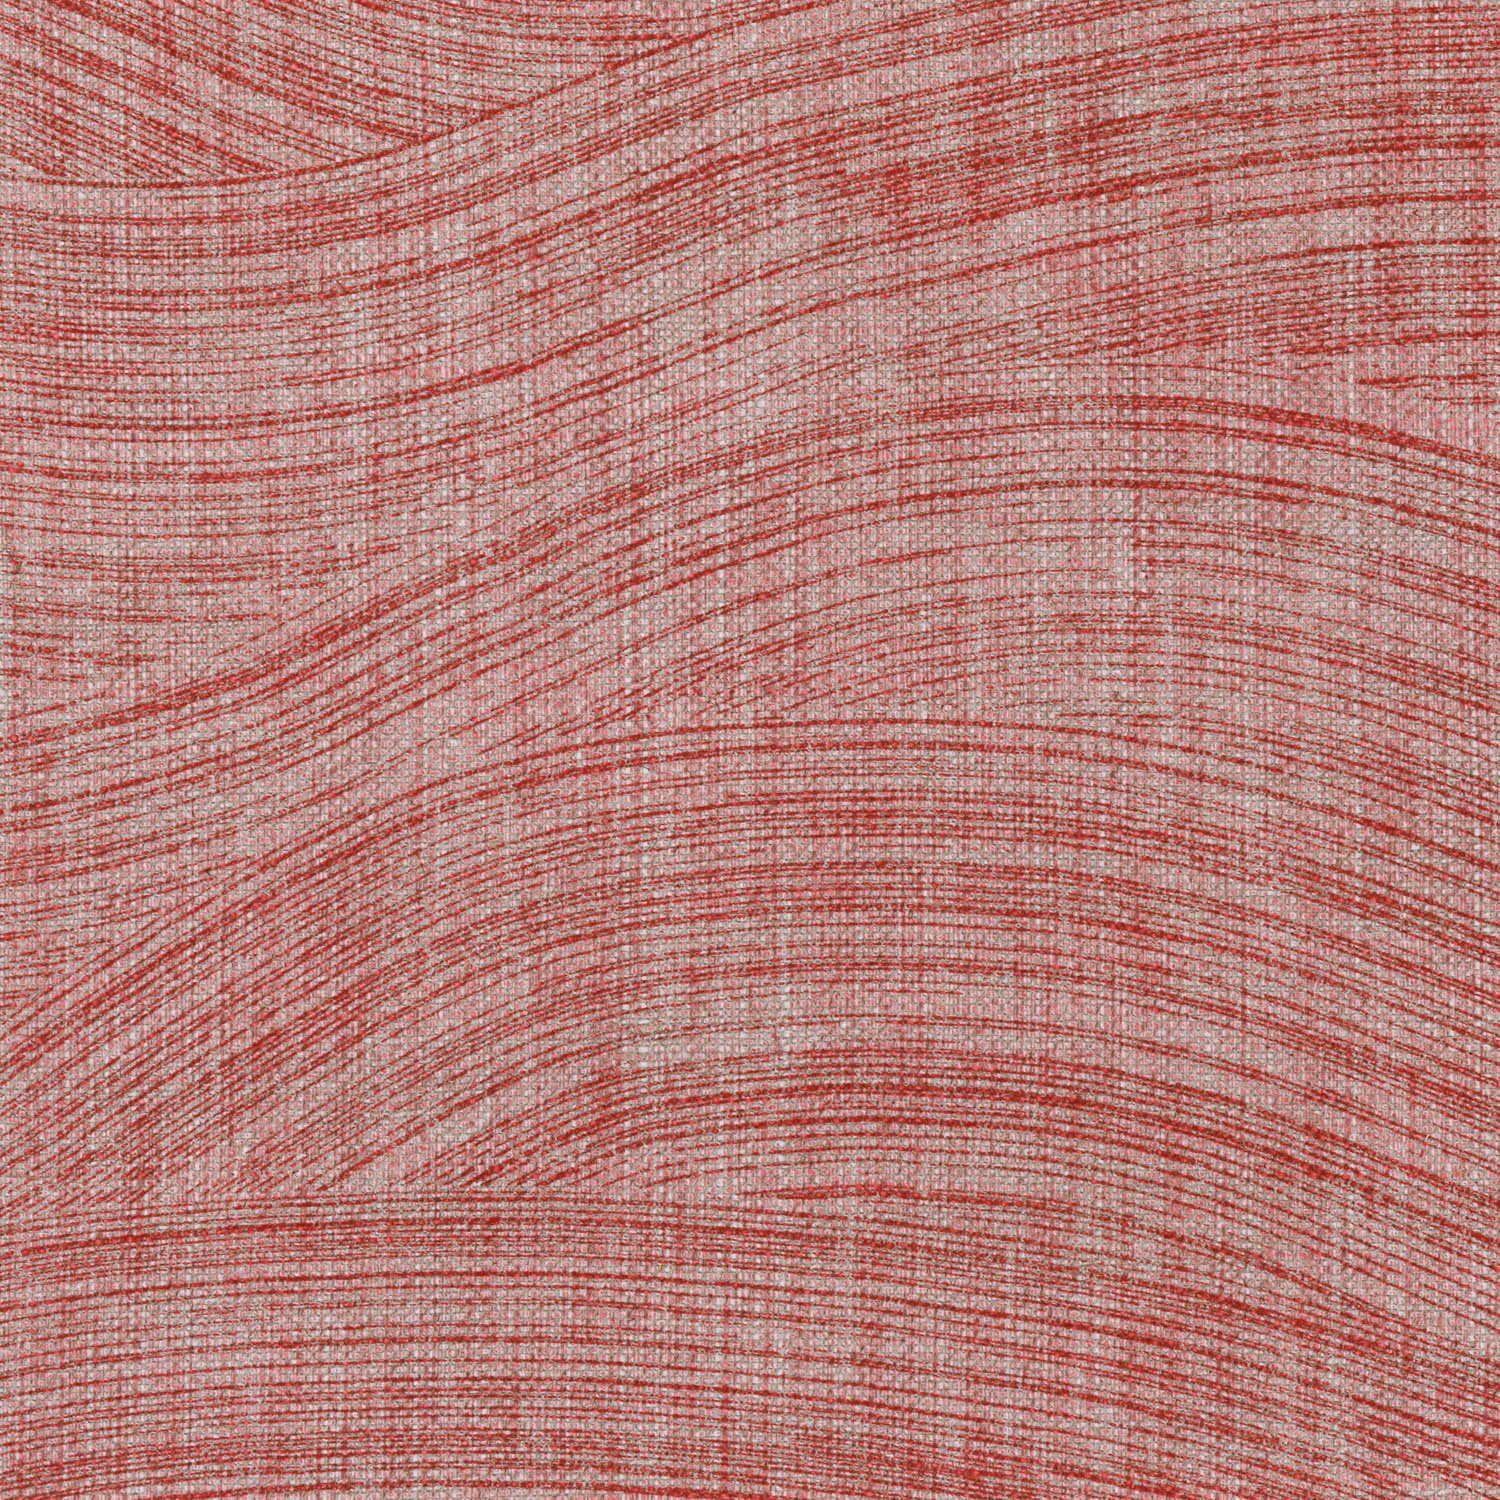 wave-002-red-wave-linen-1